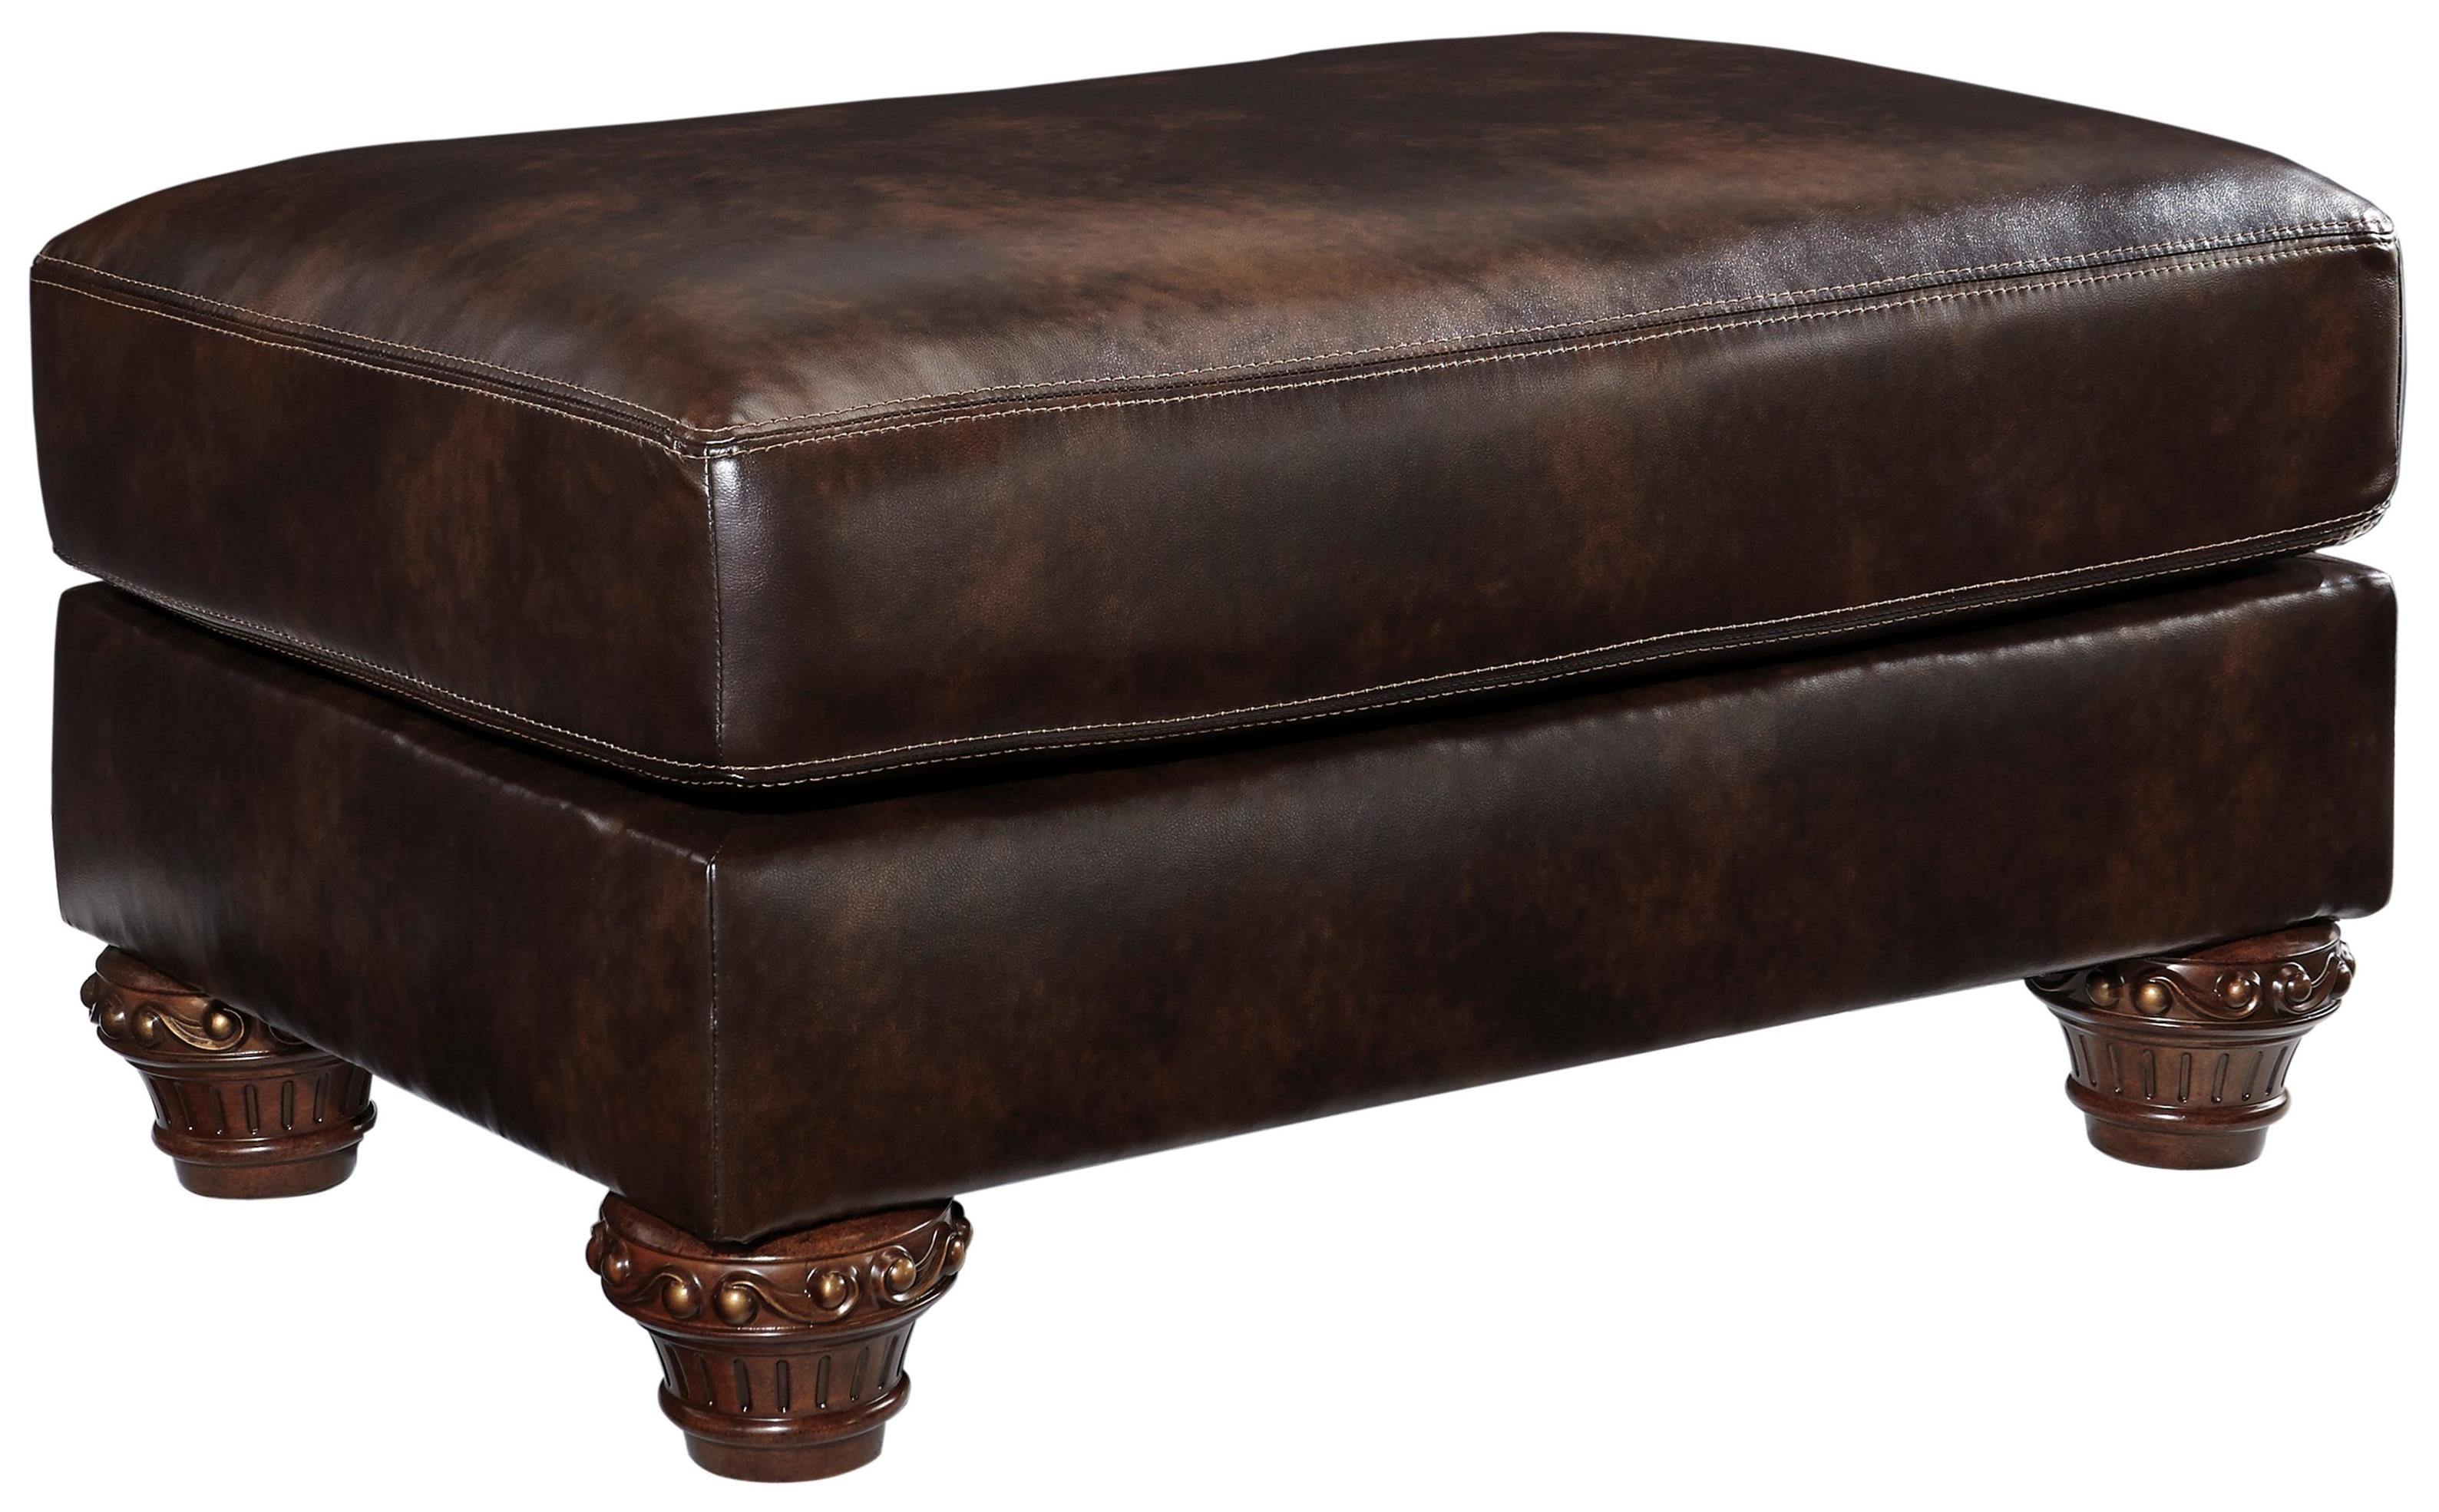 Signature Design by Ashley Vanceton Ottoman - Item Number: 6740214